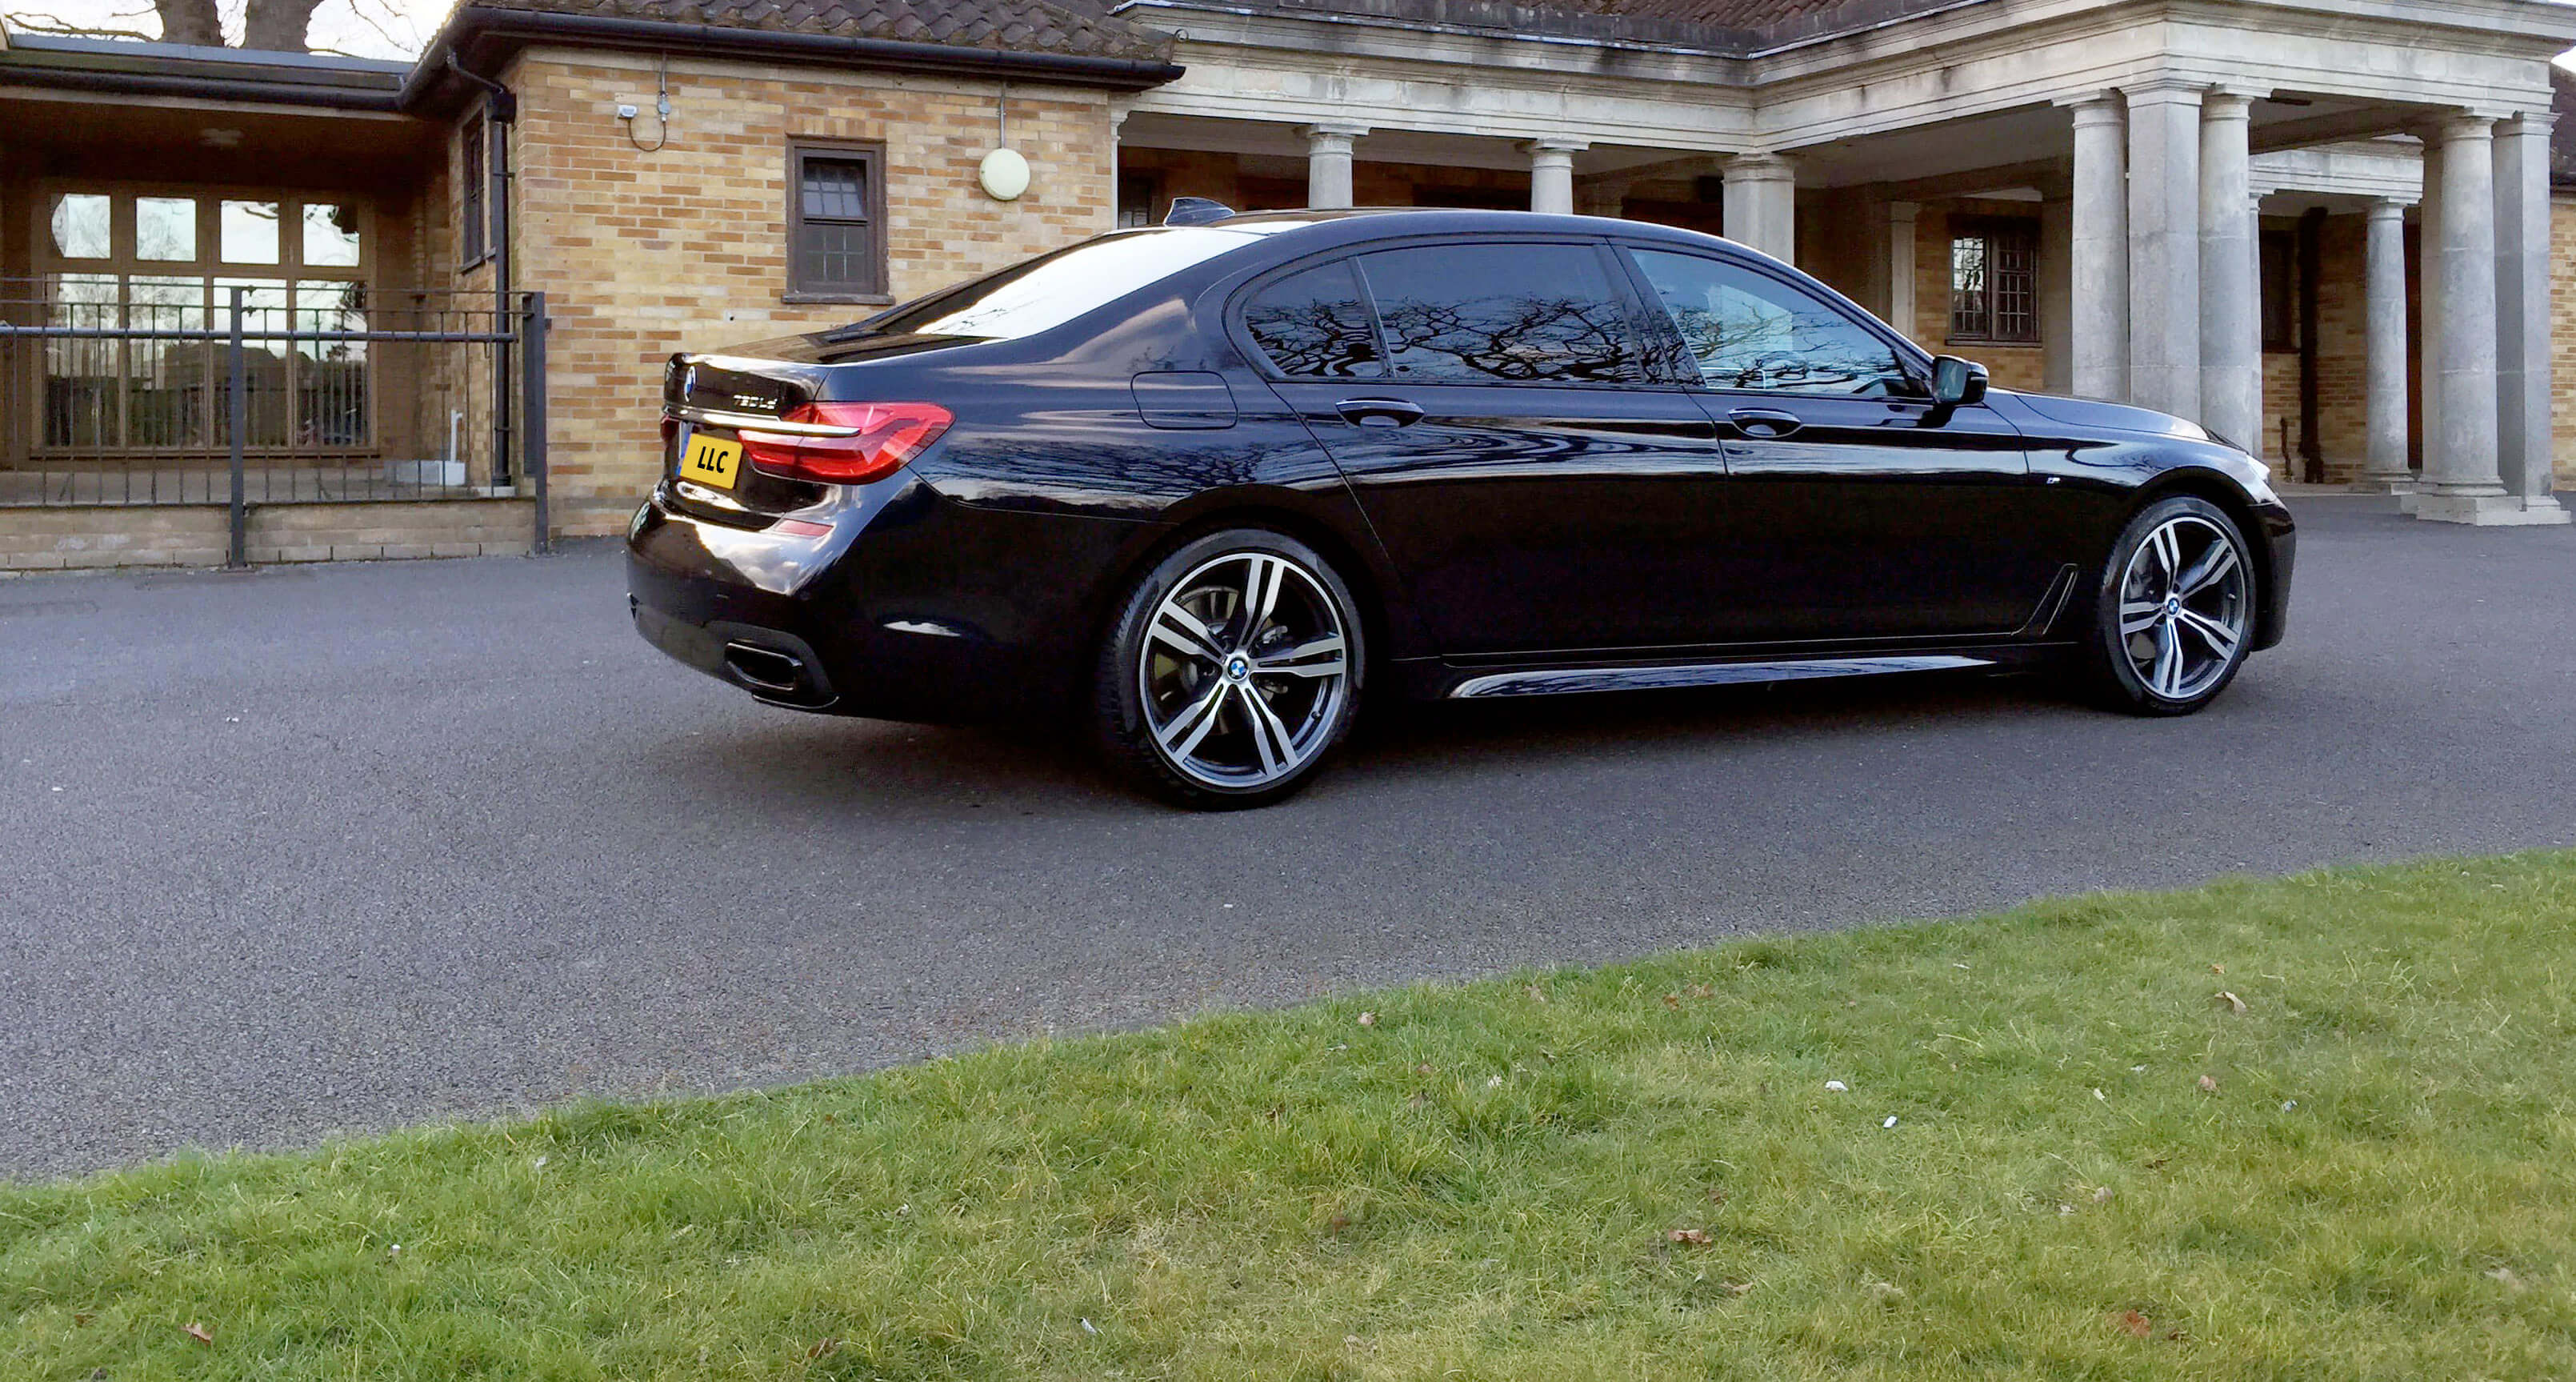 Bmw 7 Series Hire With Chauffeur In London Llc